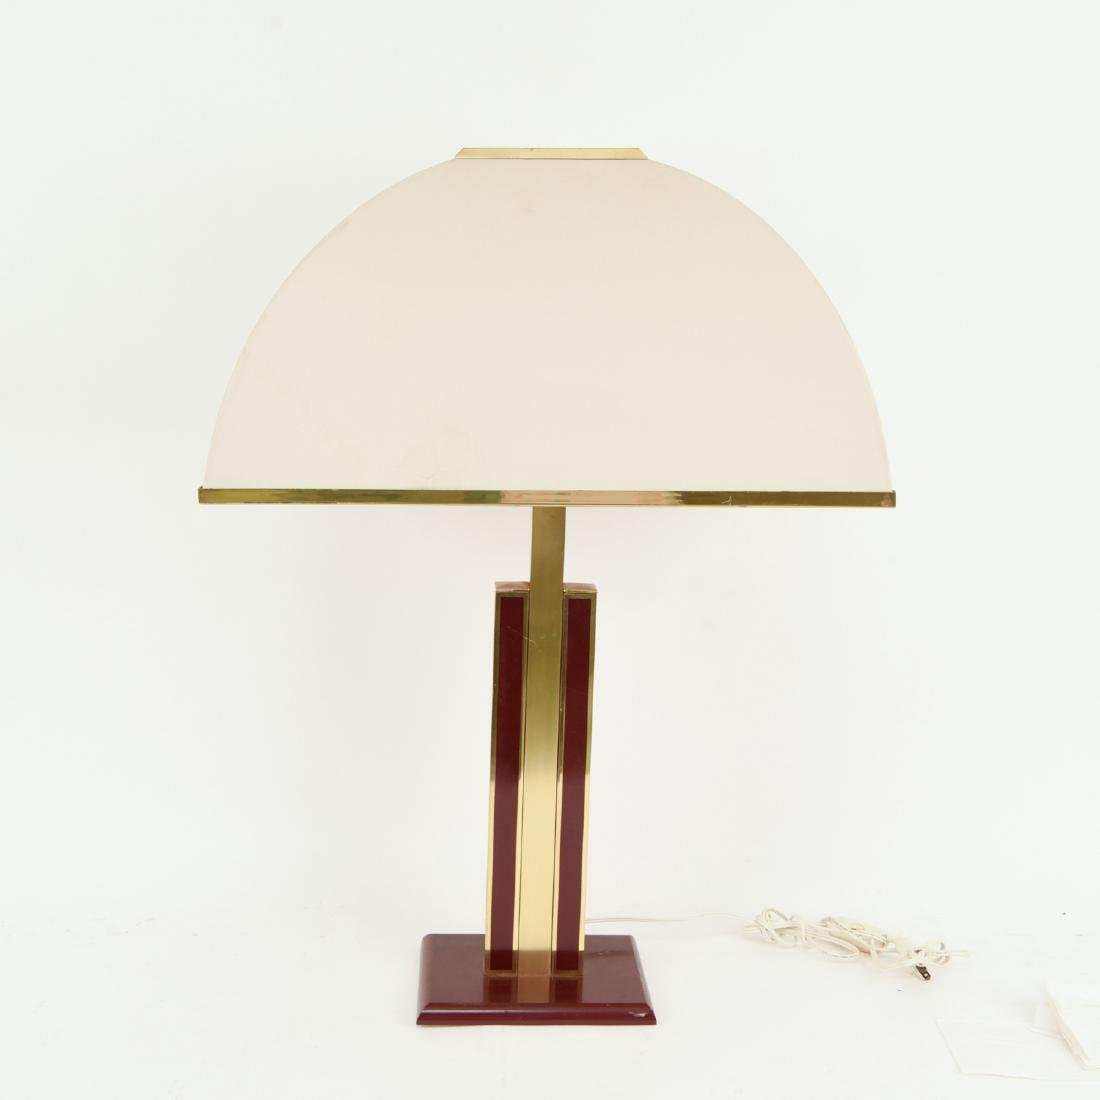 ITALIAN BRASS & WOOD TABLE LAMP